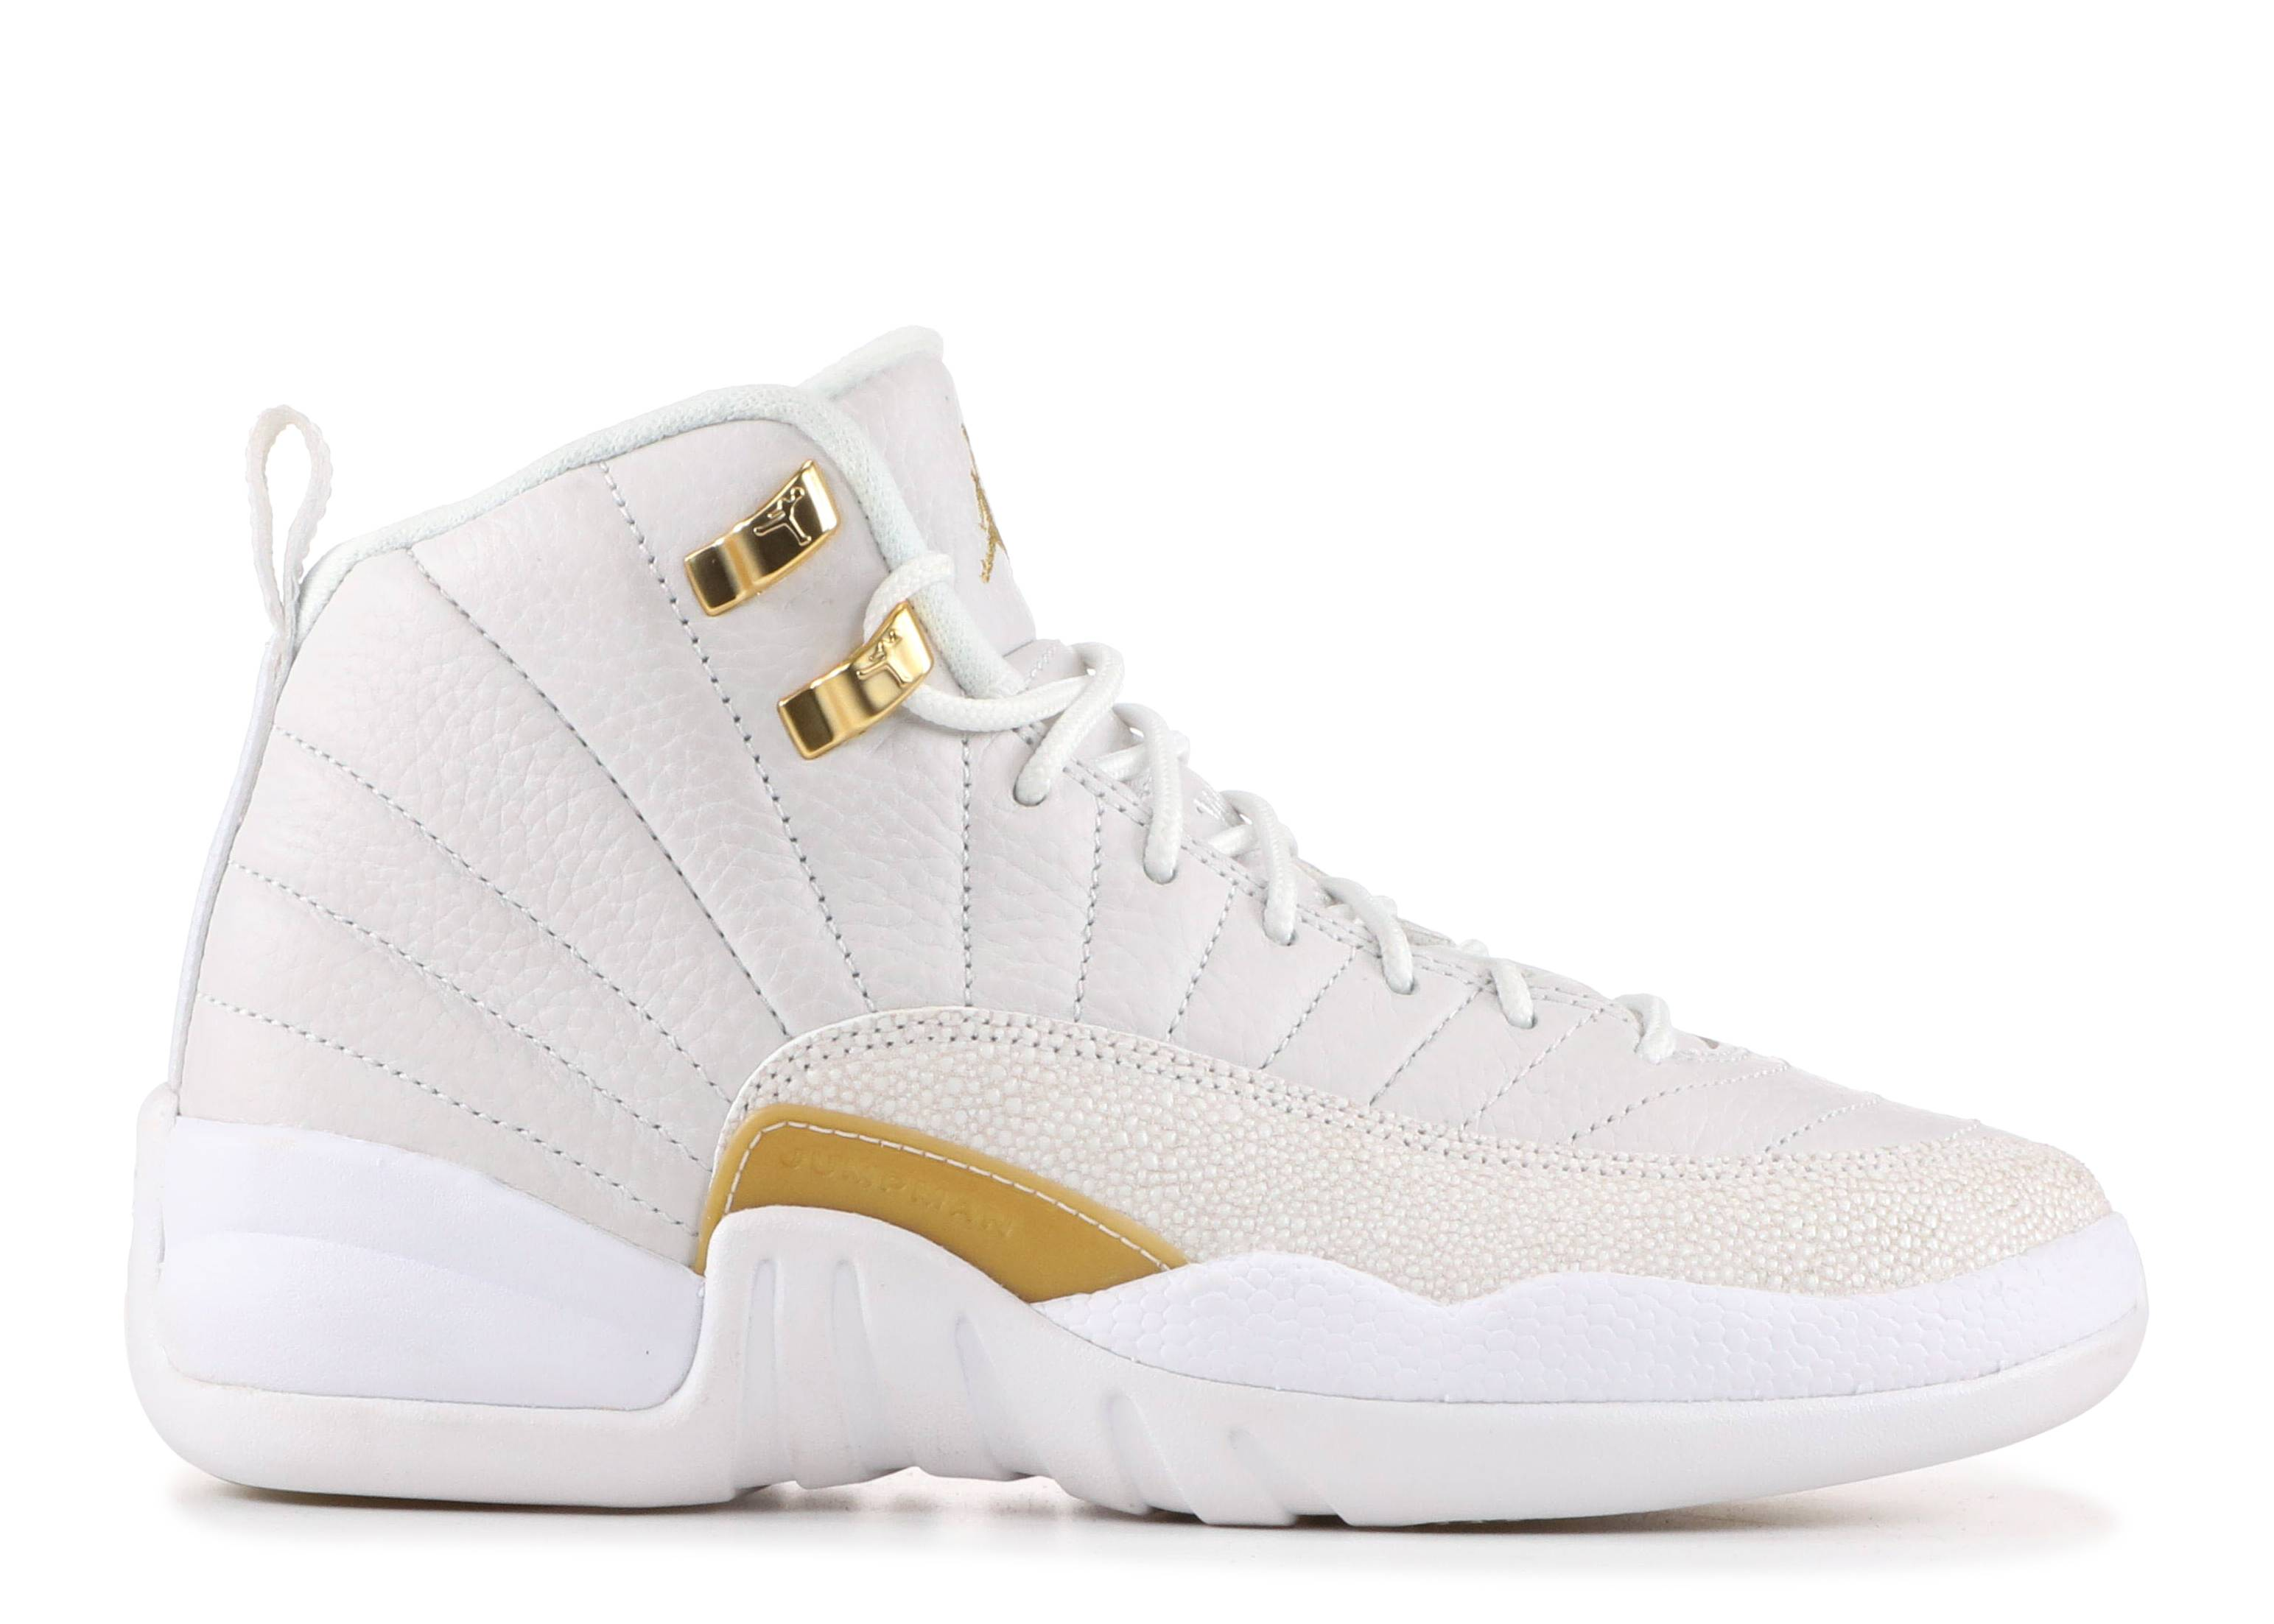 51e2f7b3dd23 Air Jordan 12 Sample